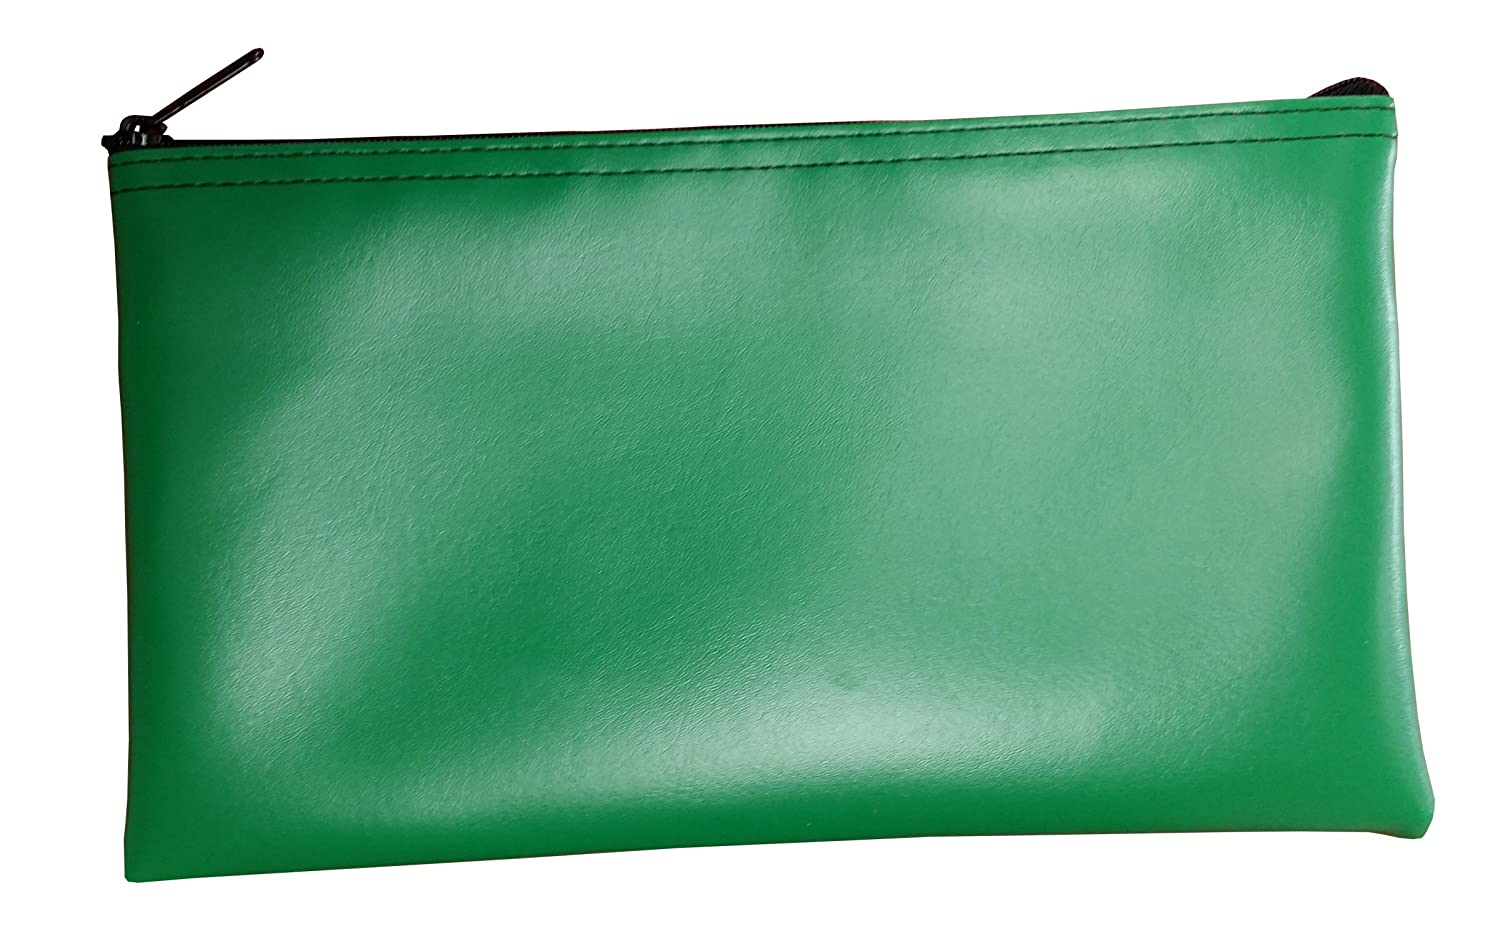 Zipper Bag Leatherette, Check Wallet 11 x 6 Inch (Black) Cardinal Bag Supplies 76161020